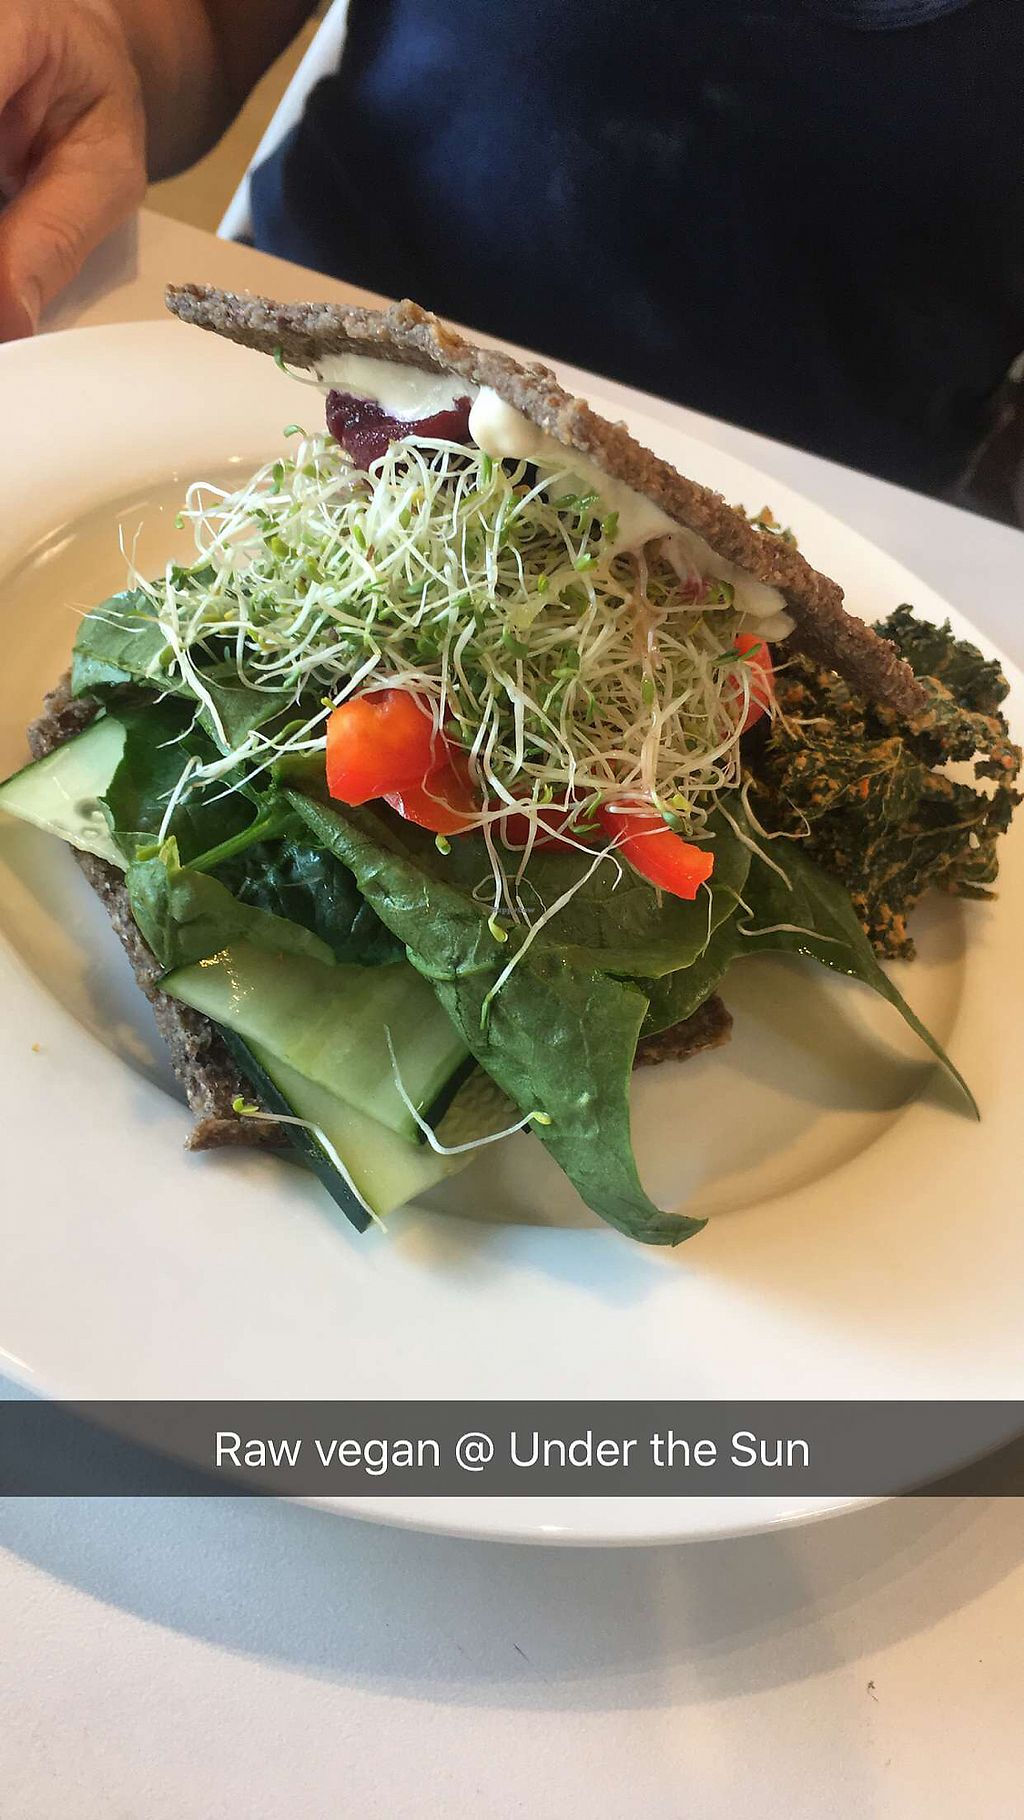 """Photo of Under the Sun Cafe  by <a href=""""/members/profile/Brews"""">Brews</a> <br/>LBC Sandwich <br/> June 30, 2017  - <a href='/contact/abuse/image/93188/275108'>Report</a>"""